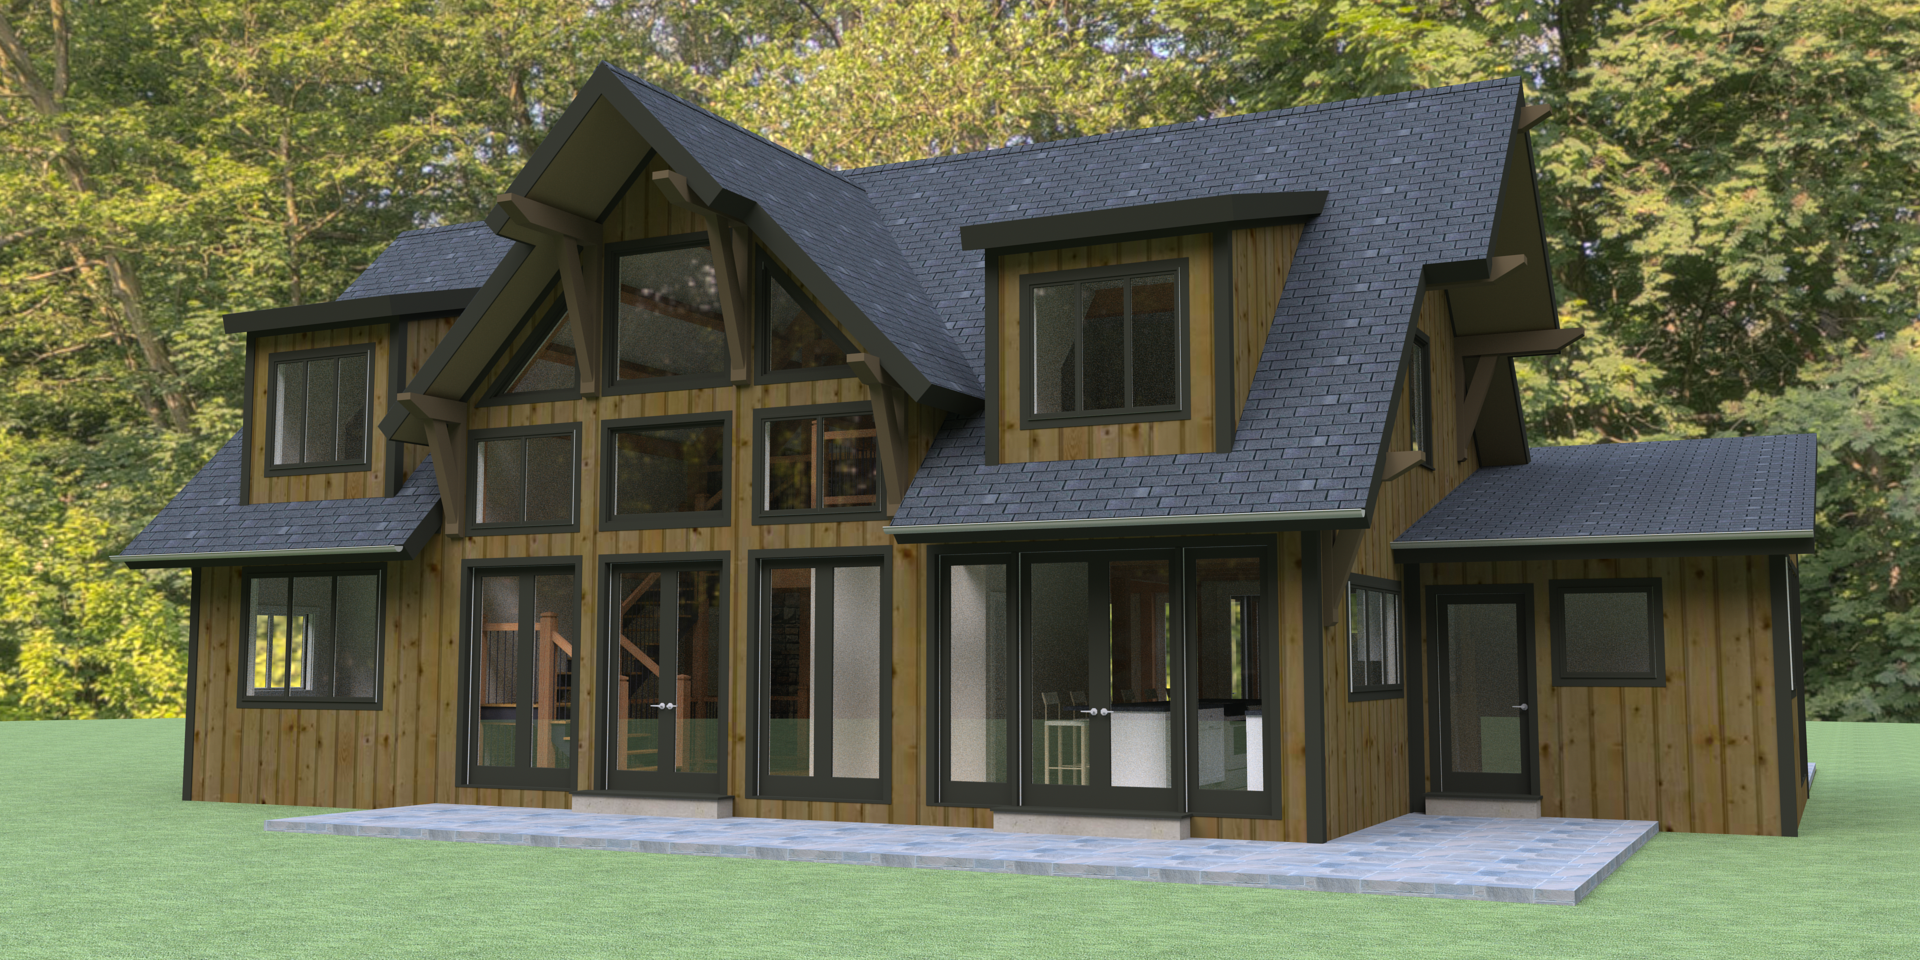 Hybrid timber frame house plans for Timber frame house plans designs